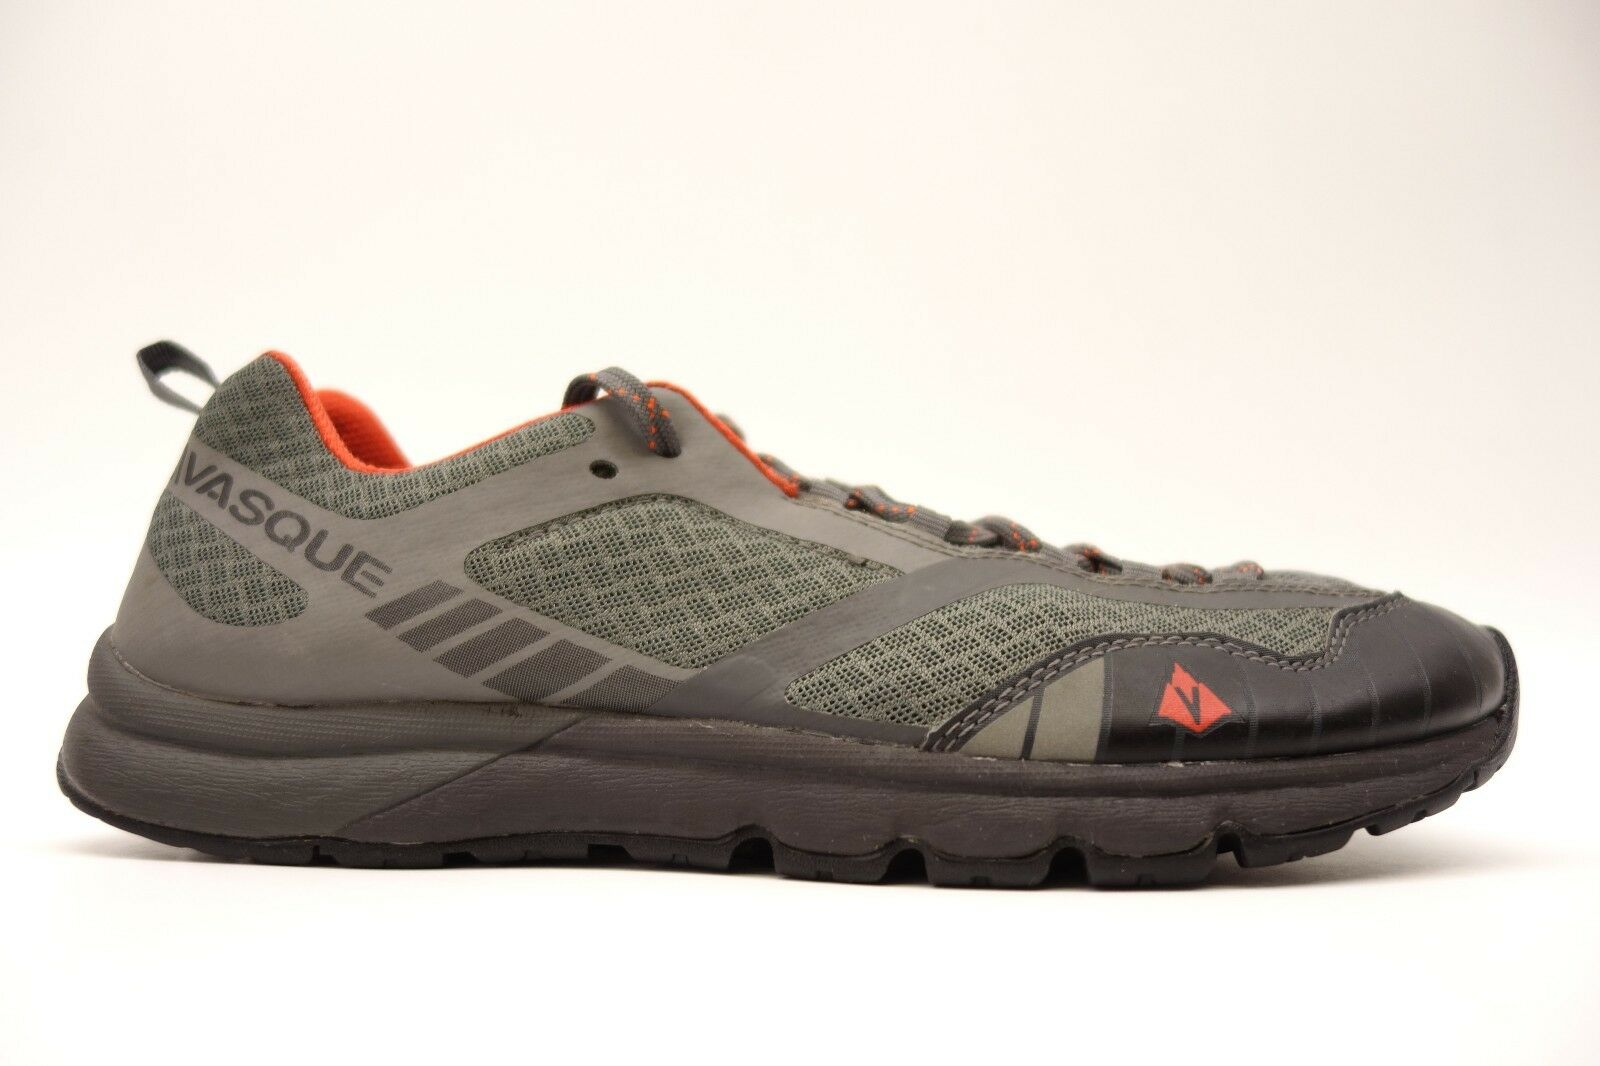 Vasque Athletic Herren Vertikal Velocity Trail-Running Athletic Vasque Leichte Schuhe Größe 10 71e428